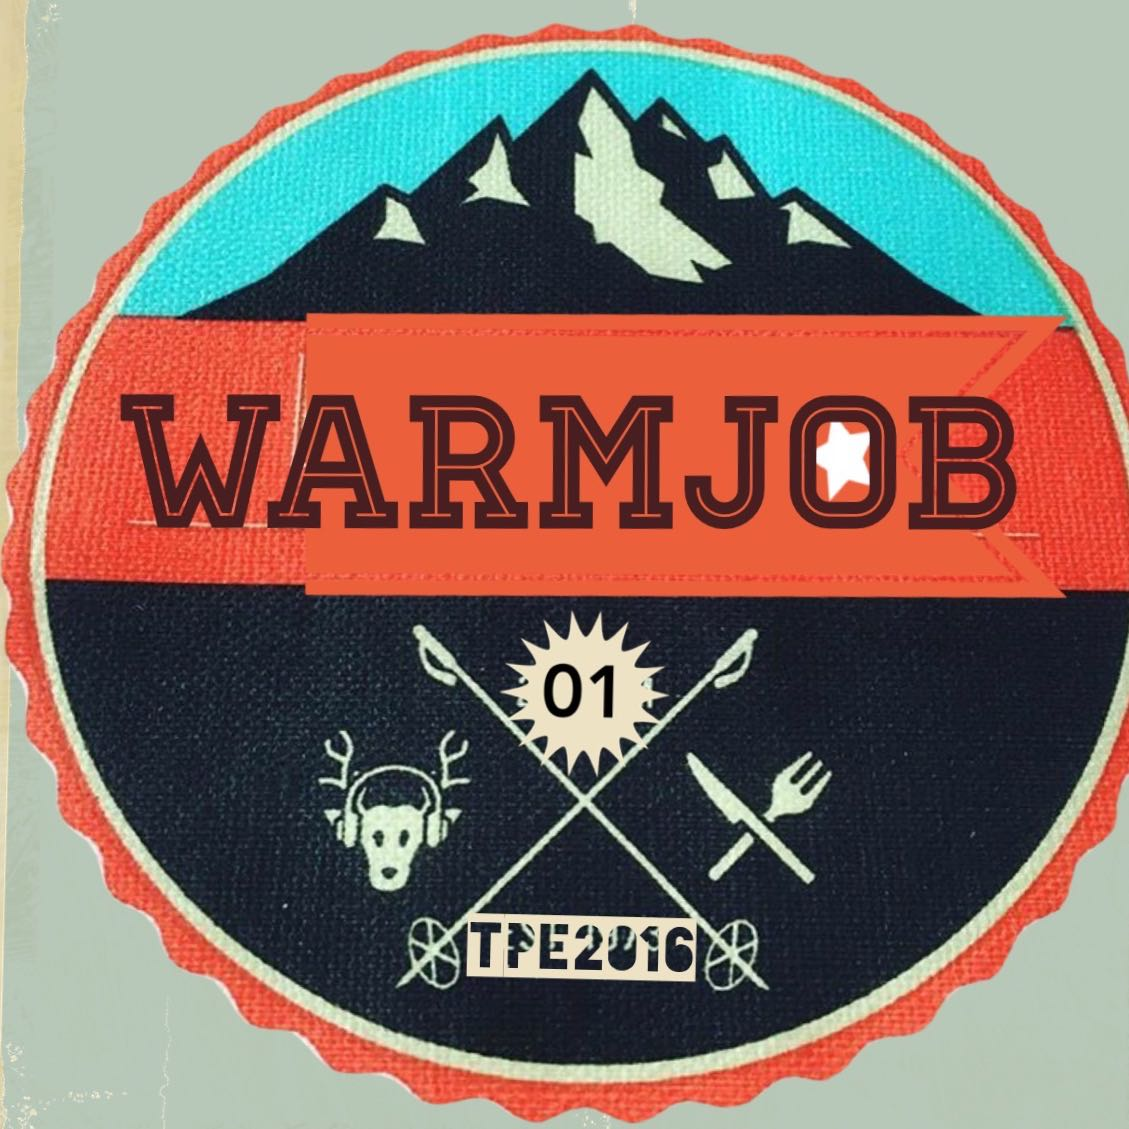 warmjob1995